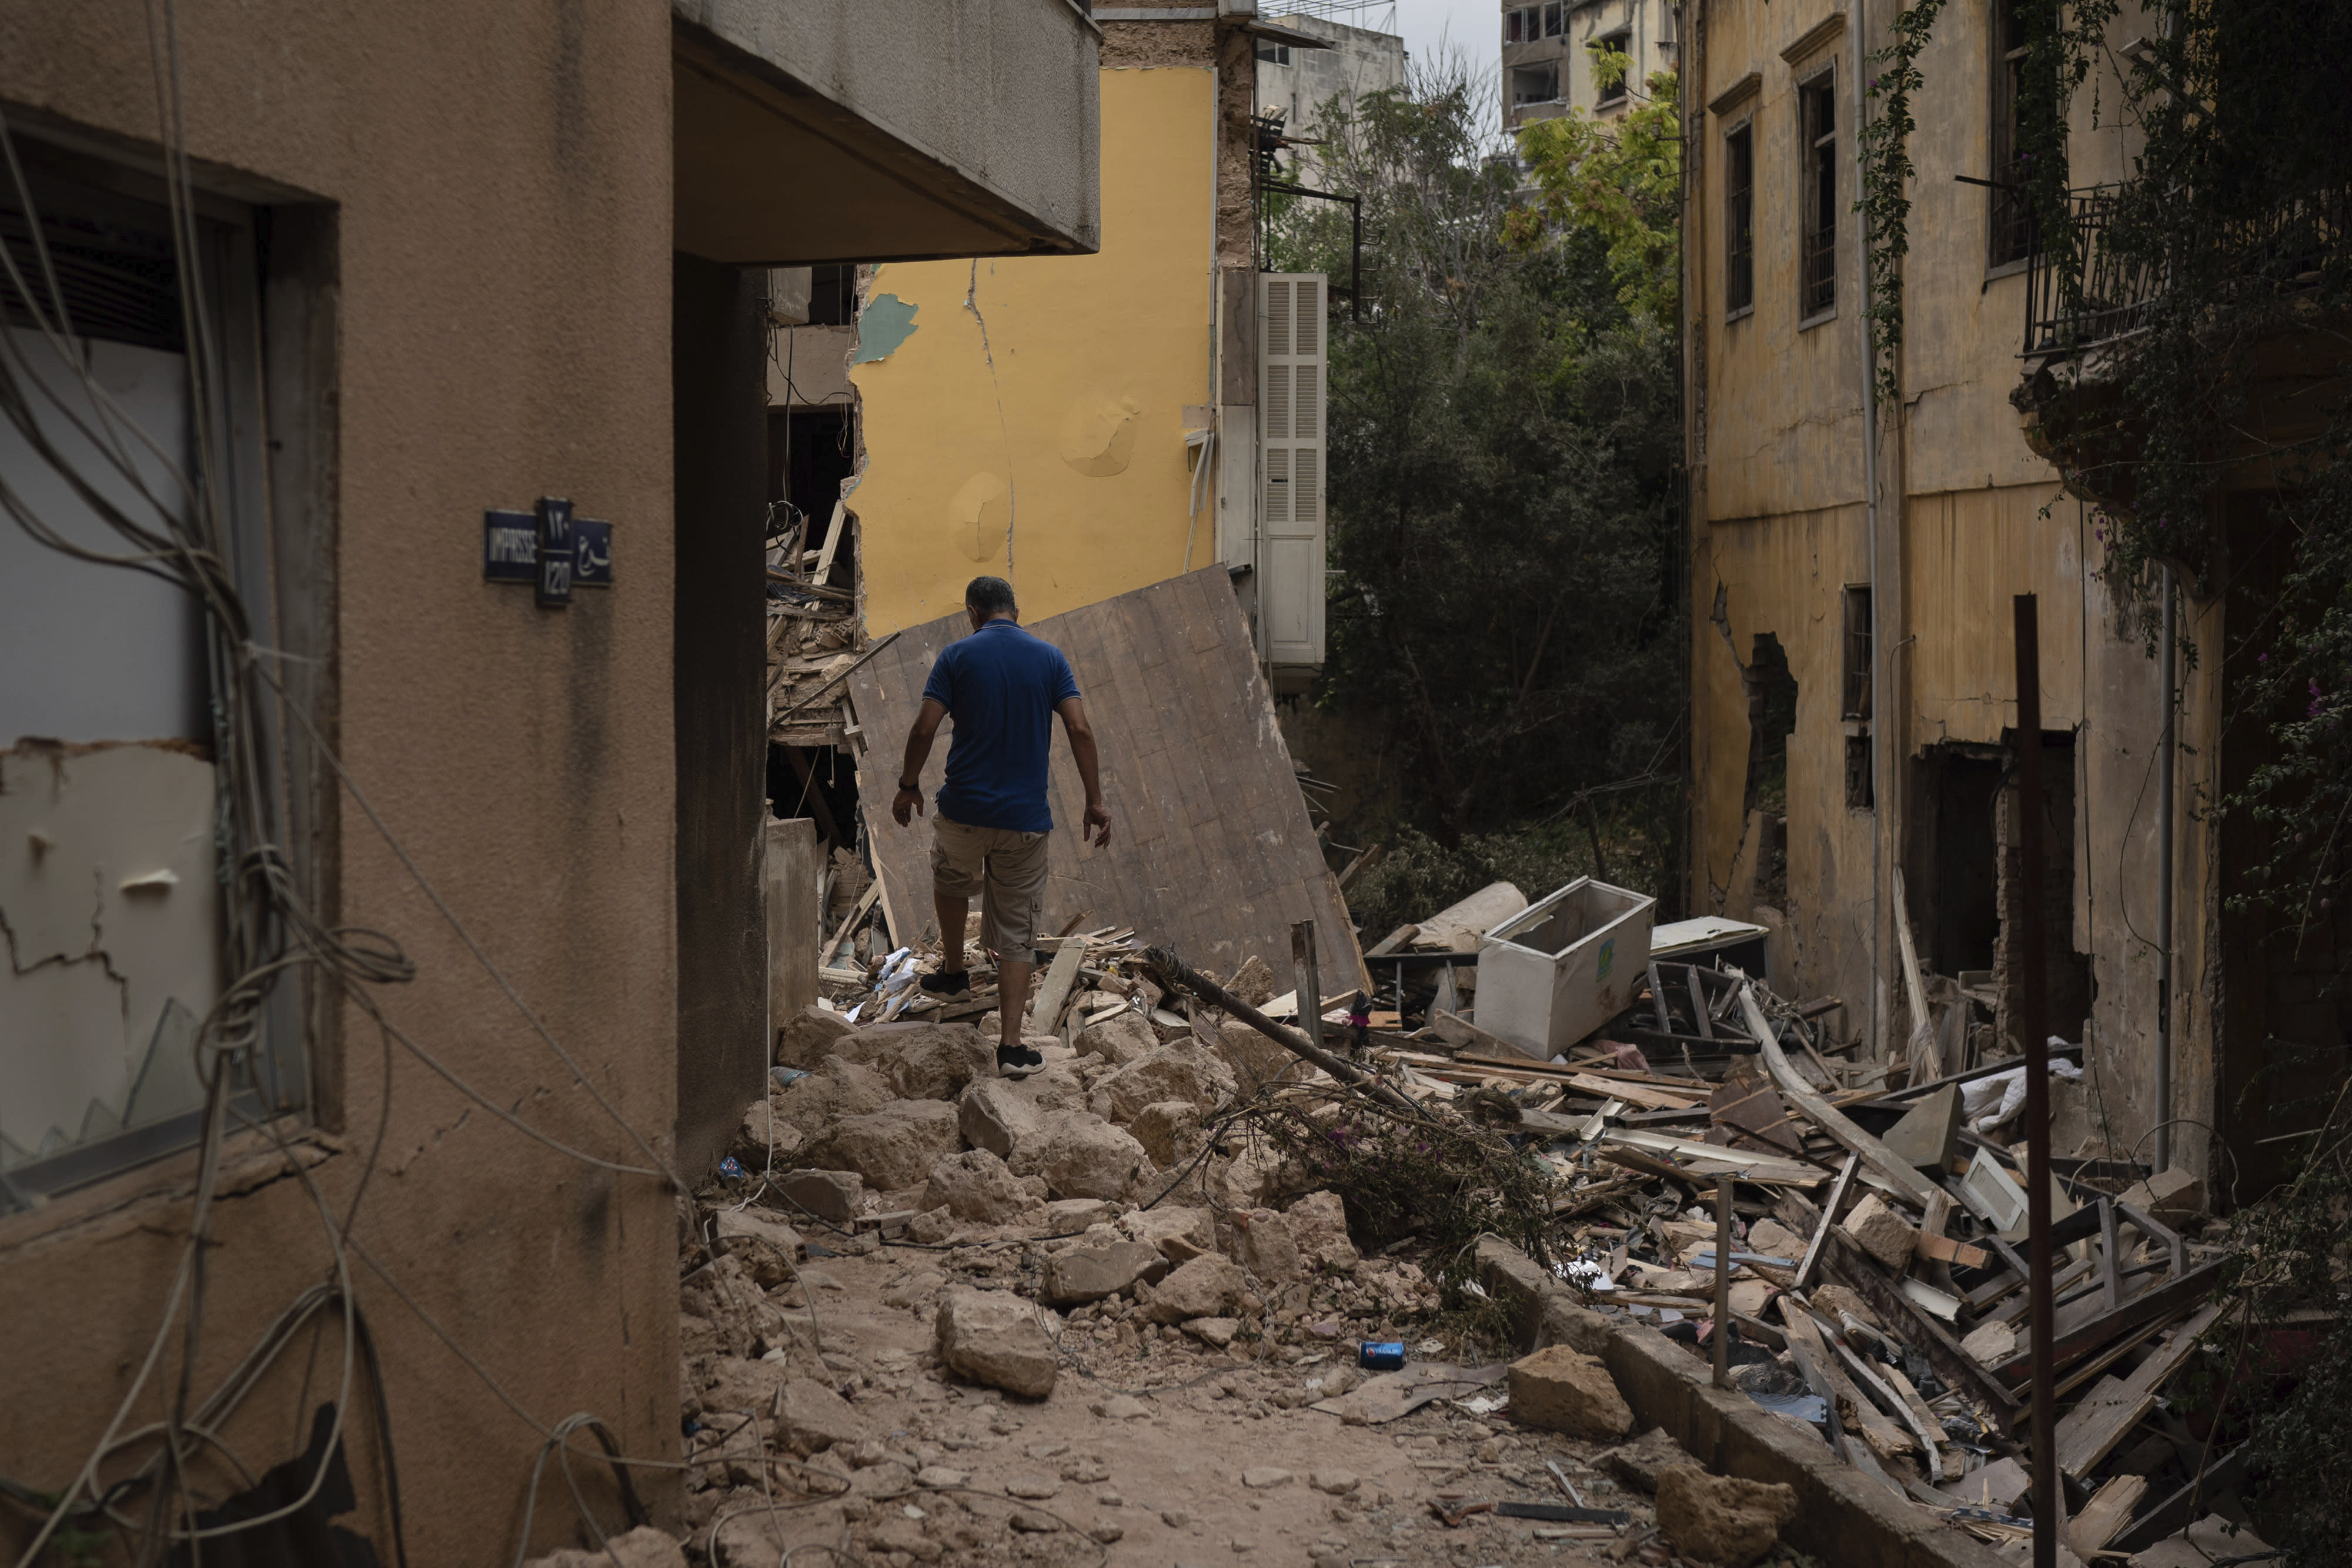 A man walks over debris of a damaged house, at a neighborhood near the scene of Tuesday's explosion that hit the seaport of Beirut, Lebanon, Friday, Aug. 7, 2020. Rescue teams were still searching the rubble of Beirut's port for bodies on Friday, nearly three days after a massive explosion sent a wave of destruction through Lebanon's capital. (AP Photo/Felipe Dana)